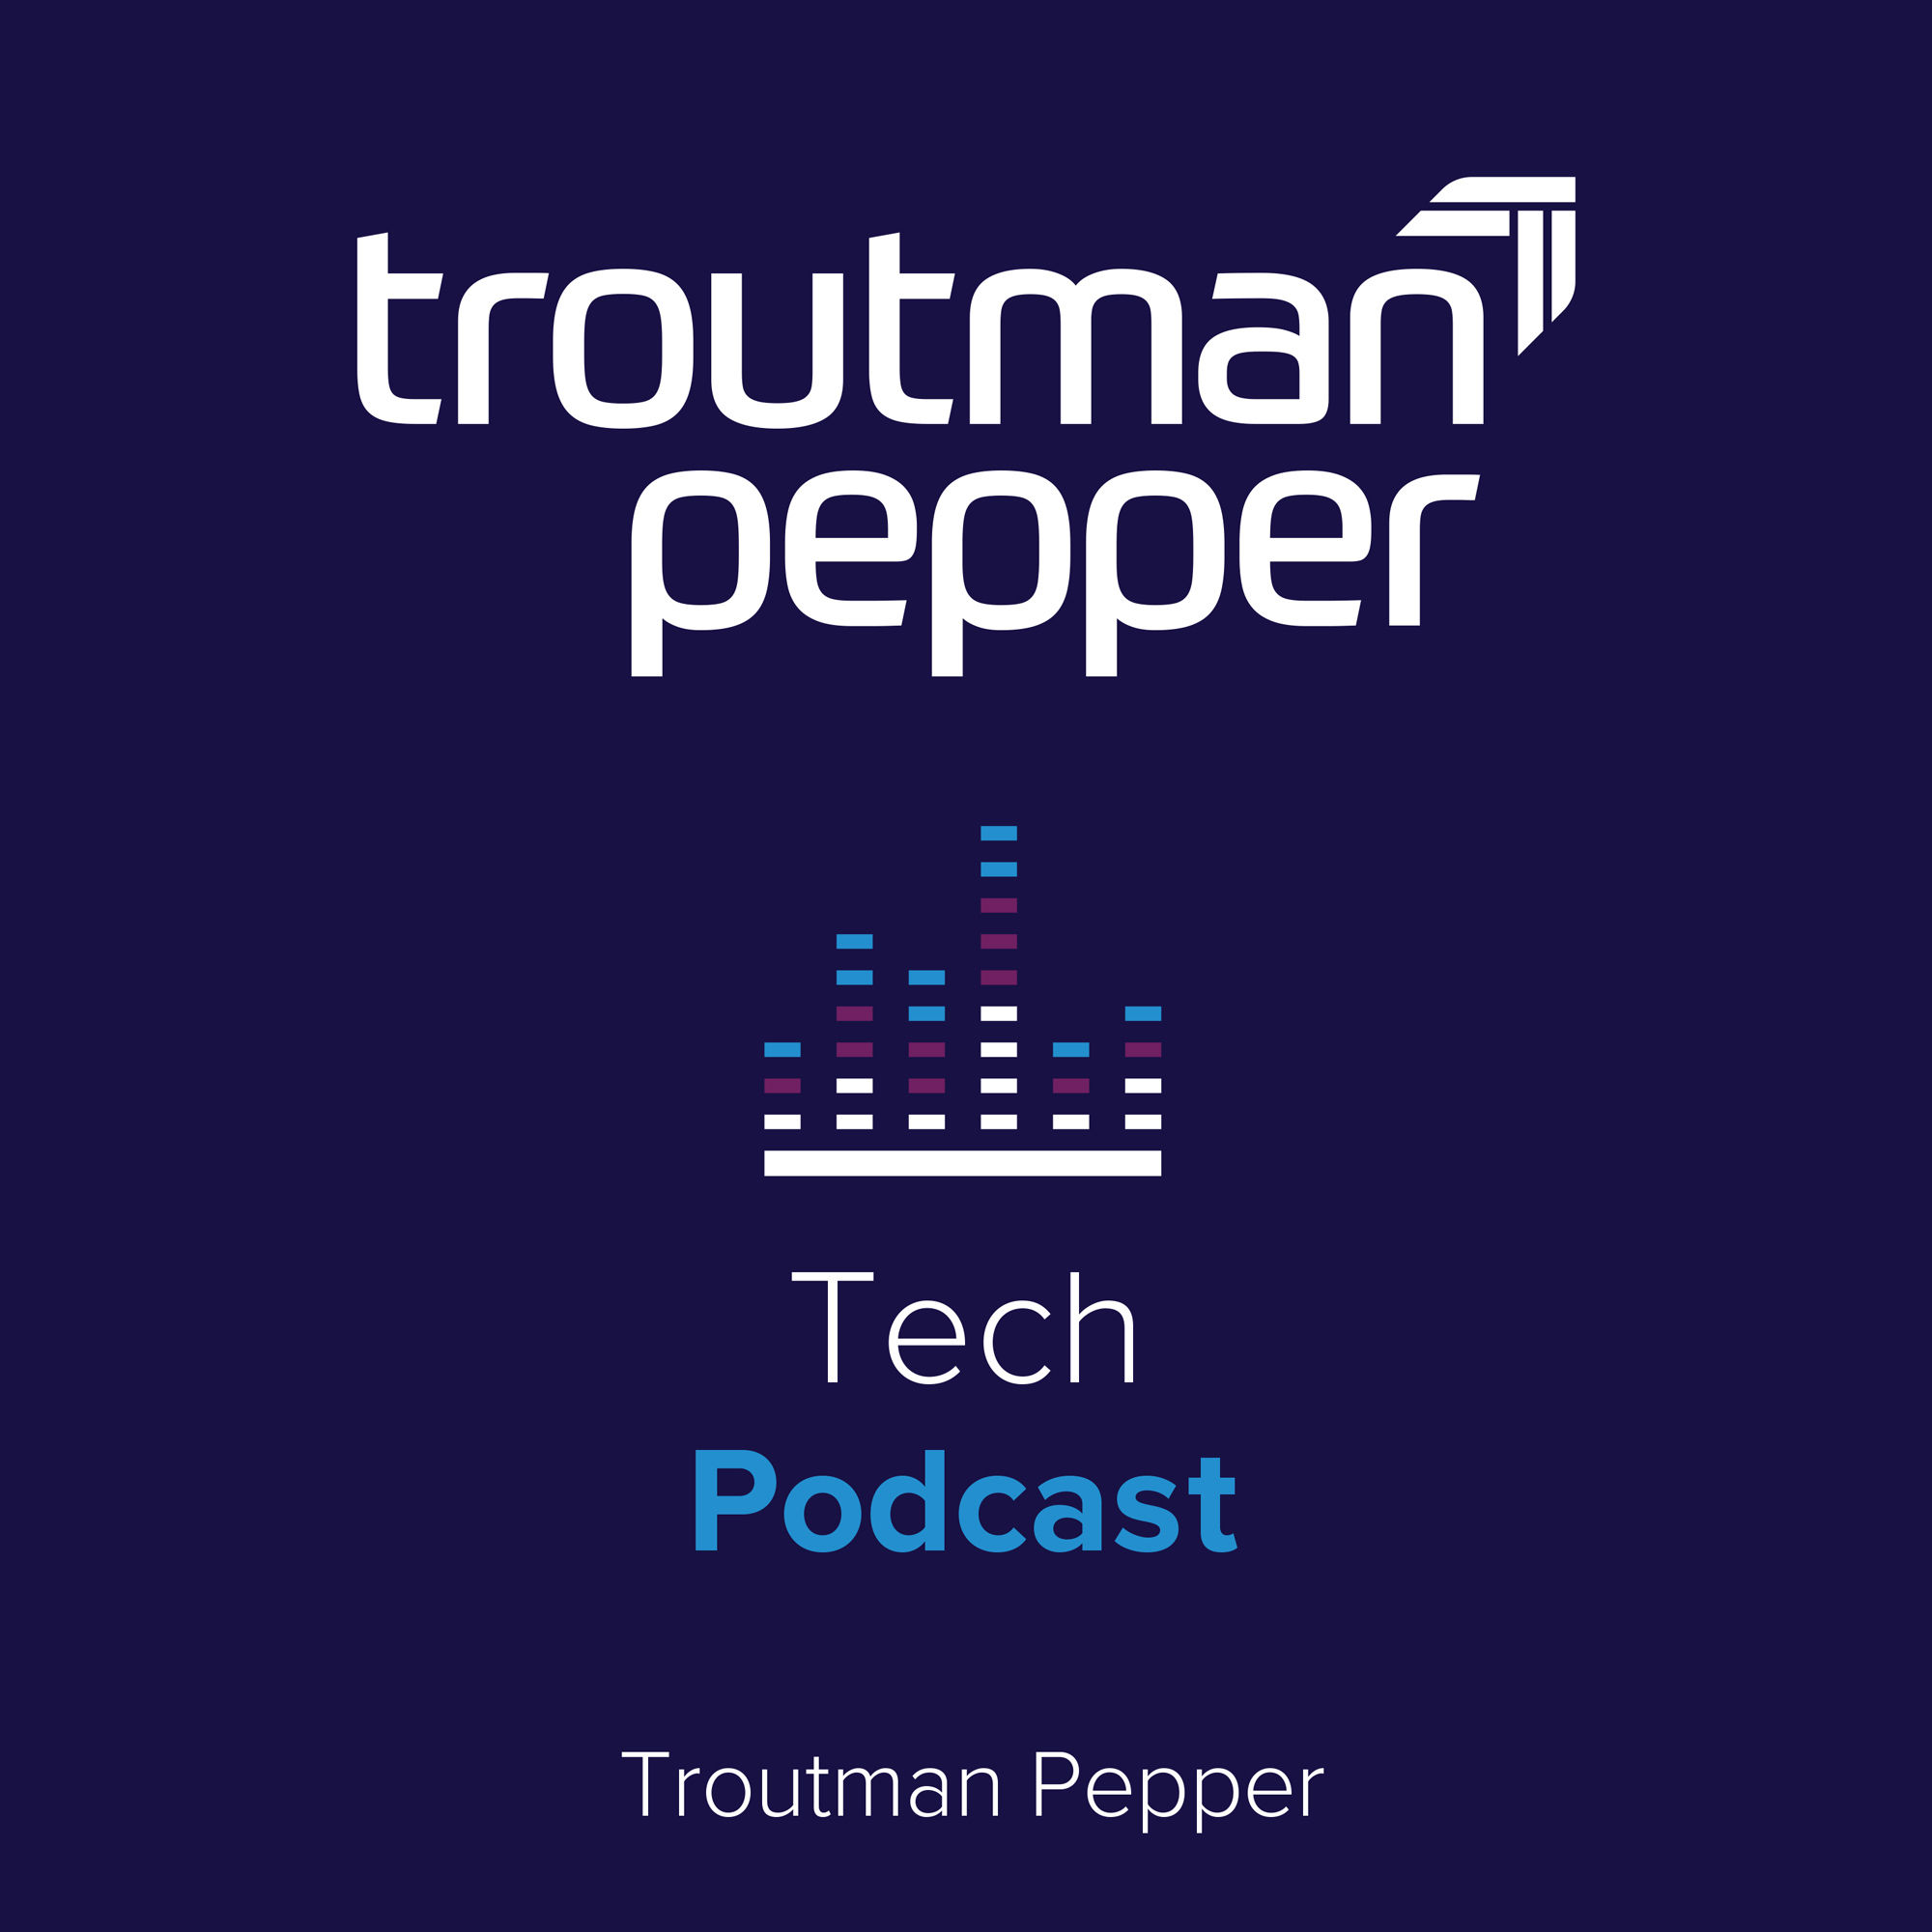 Tech Podcast